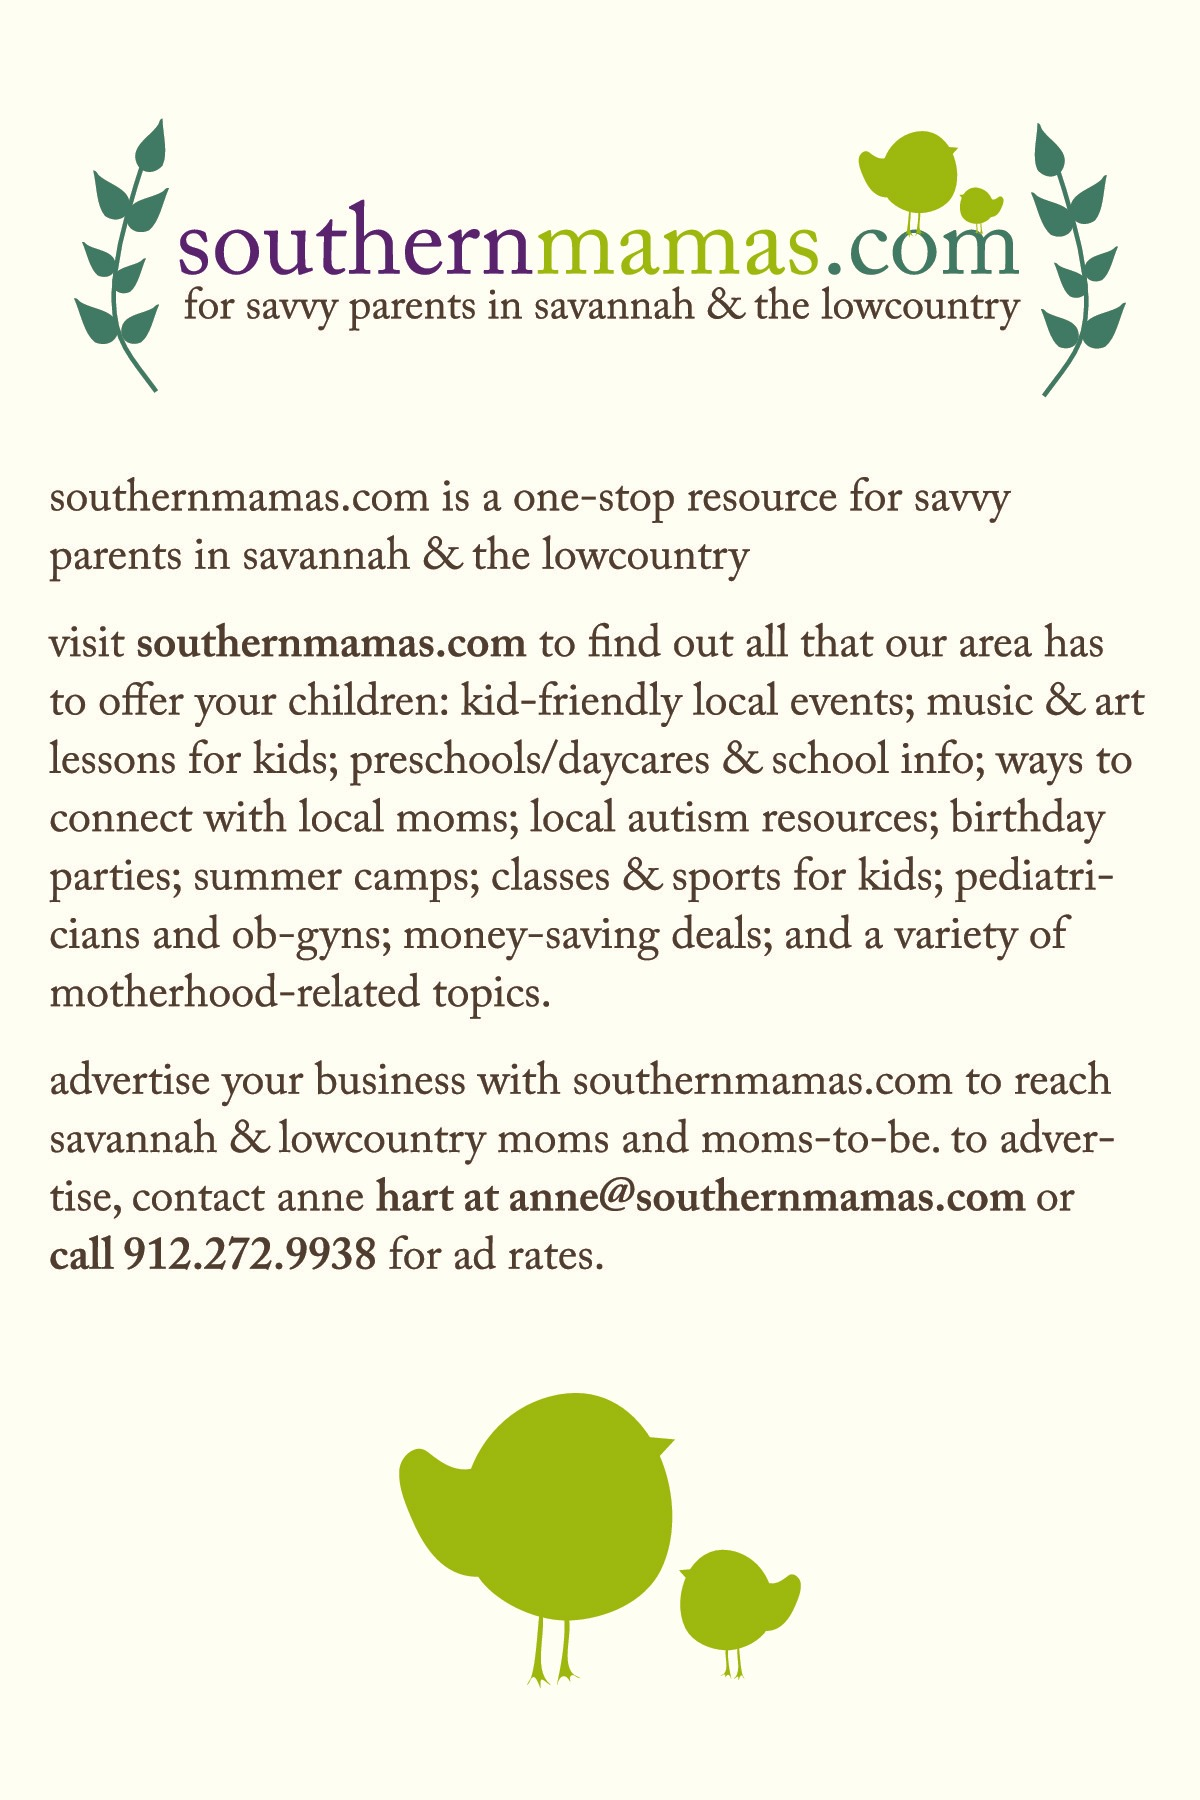 Advertise on SouthernMamas.com to reach moms in Savannah, Hilton Head Is.